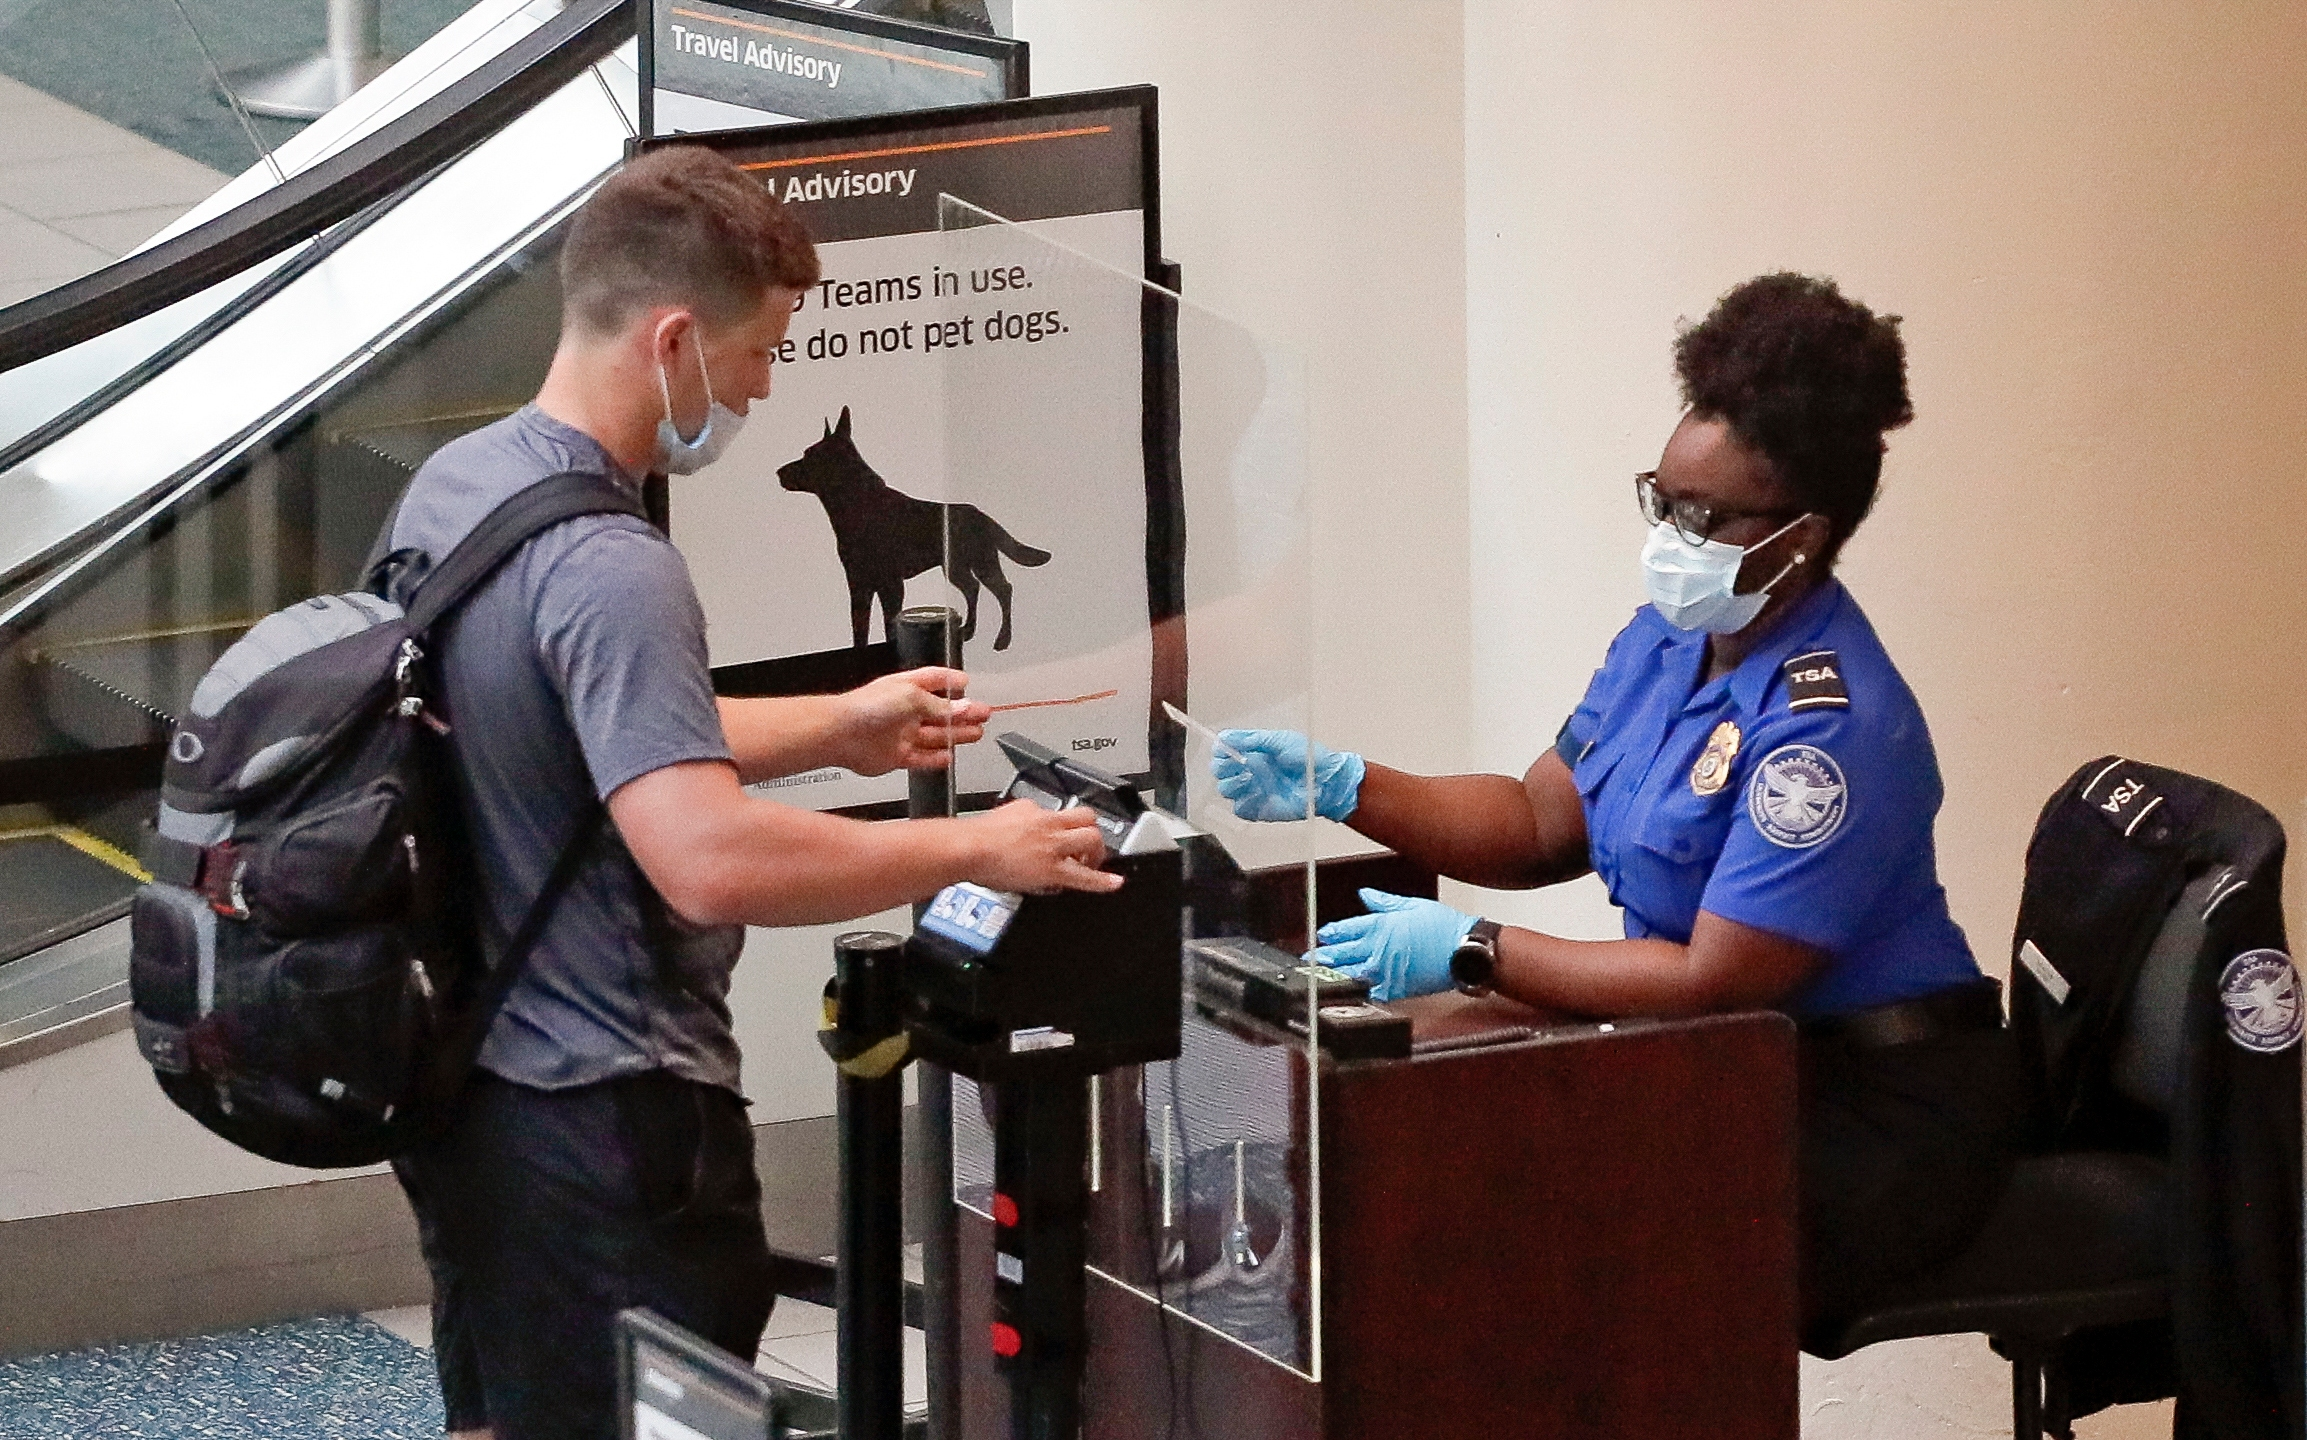 In this June 17, 2020 file photo, a TSA worker, right, checks a passenger before entering a security screening at Orlando International Airport in Orlando, Fla. (AP Photo/John Raoux, File)